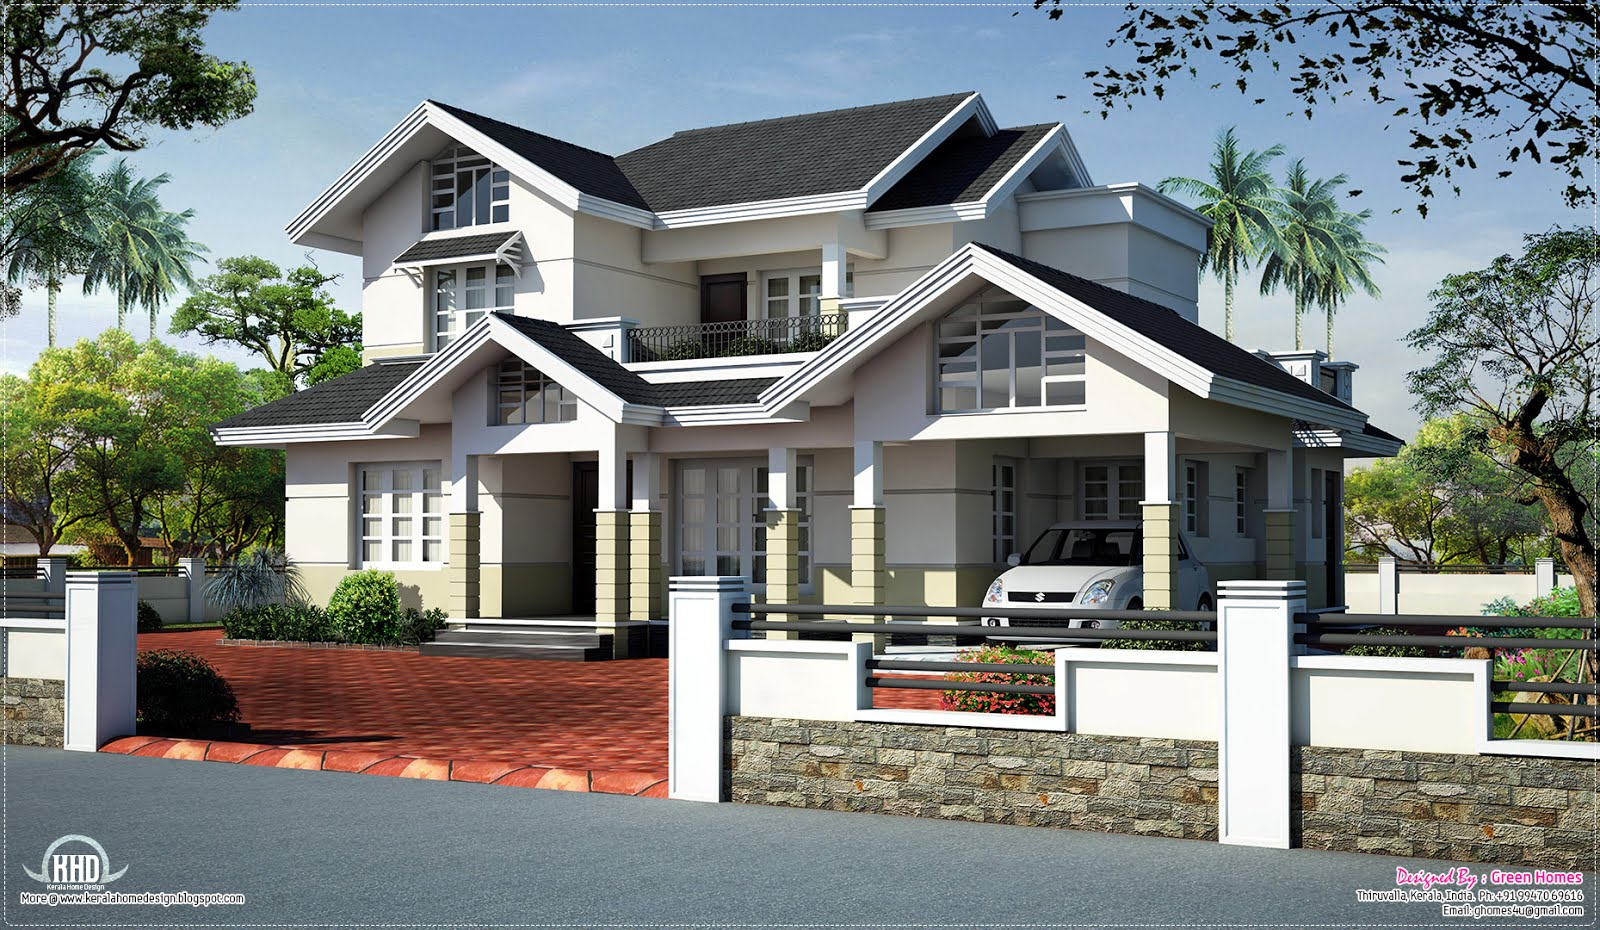 Roof Design Ideas: Sloped Roof House Elevation Design